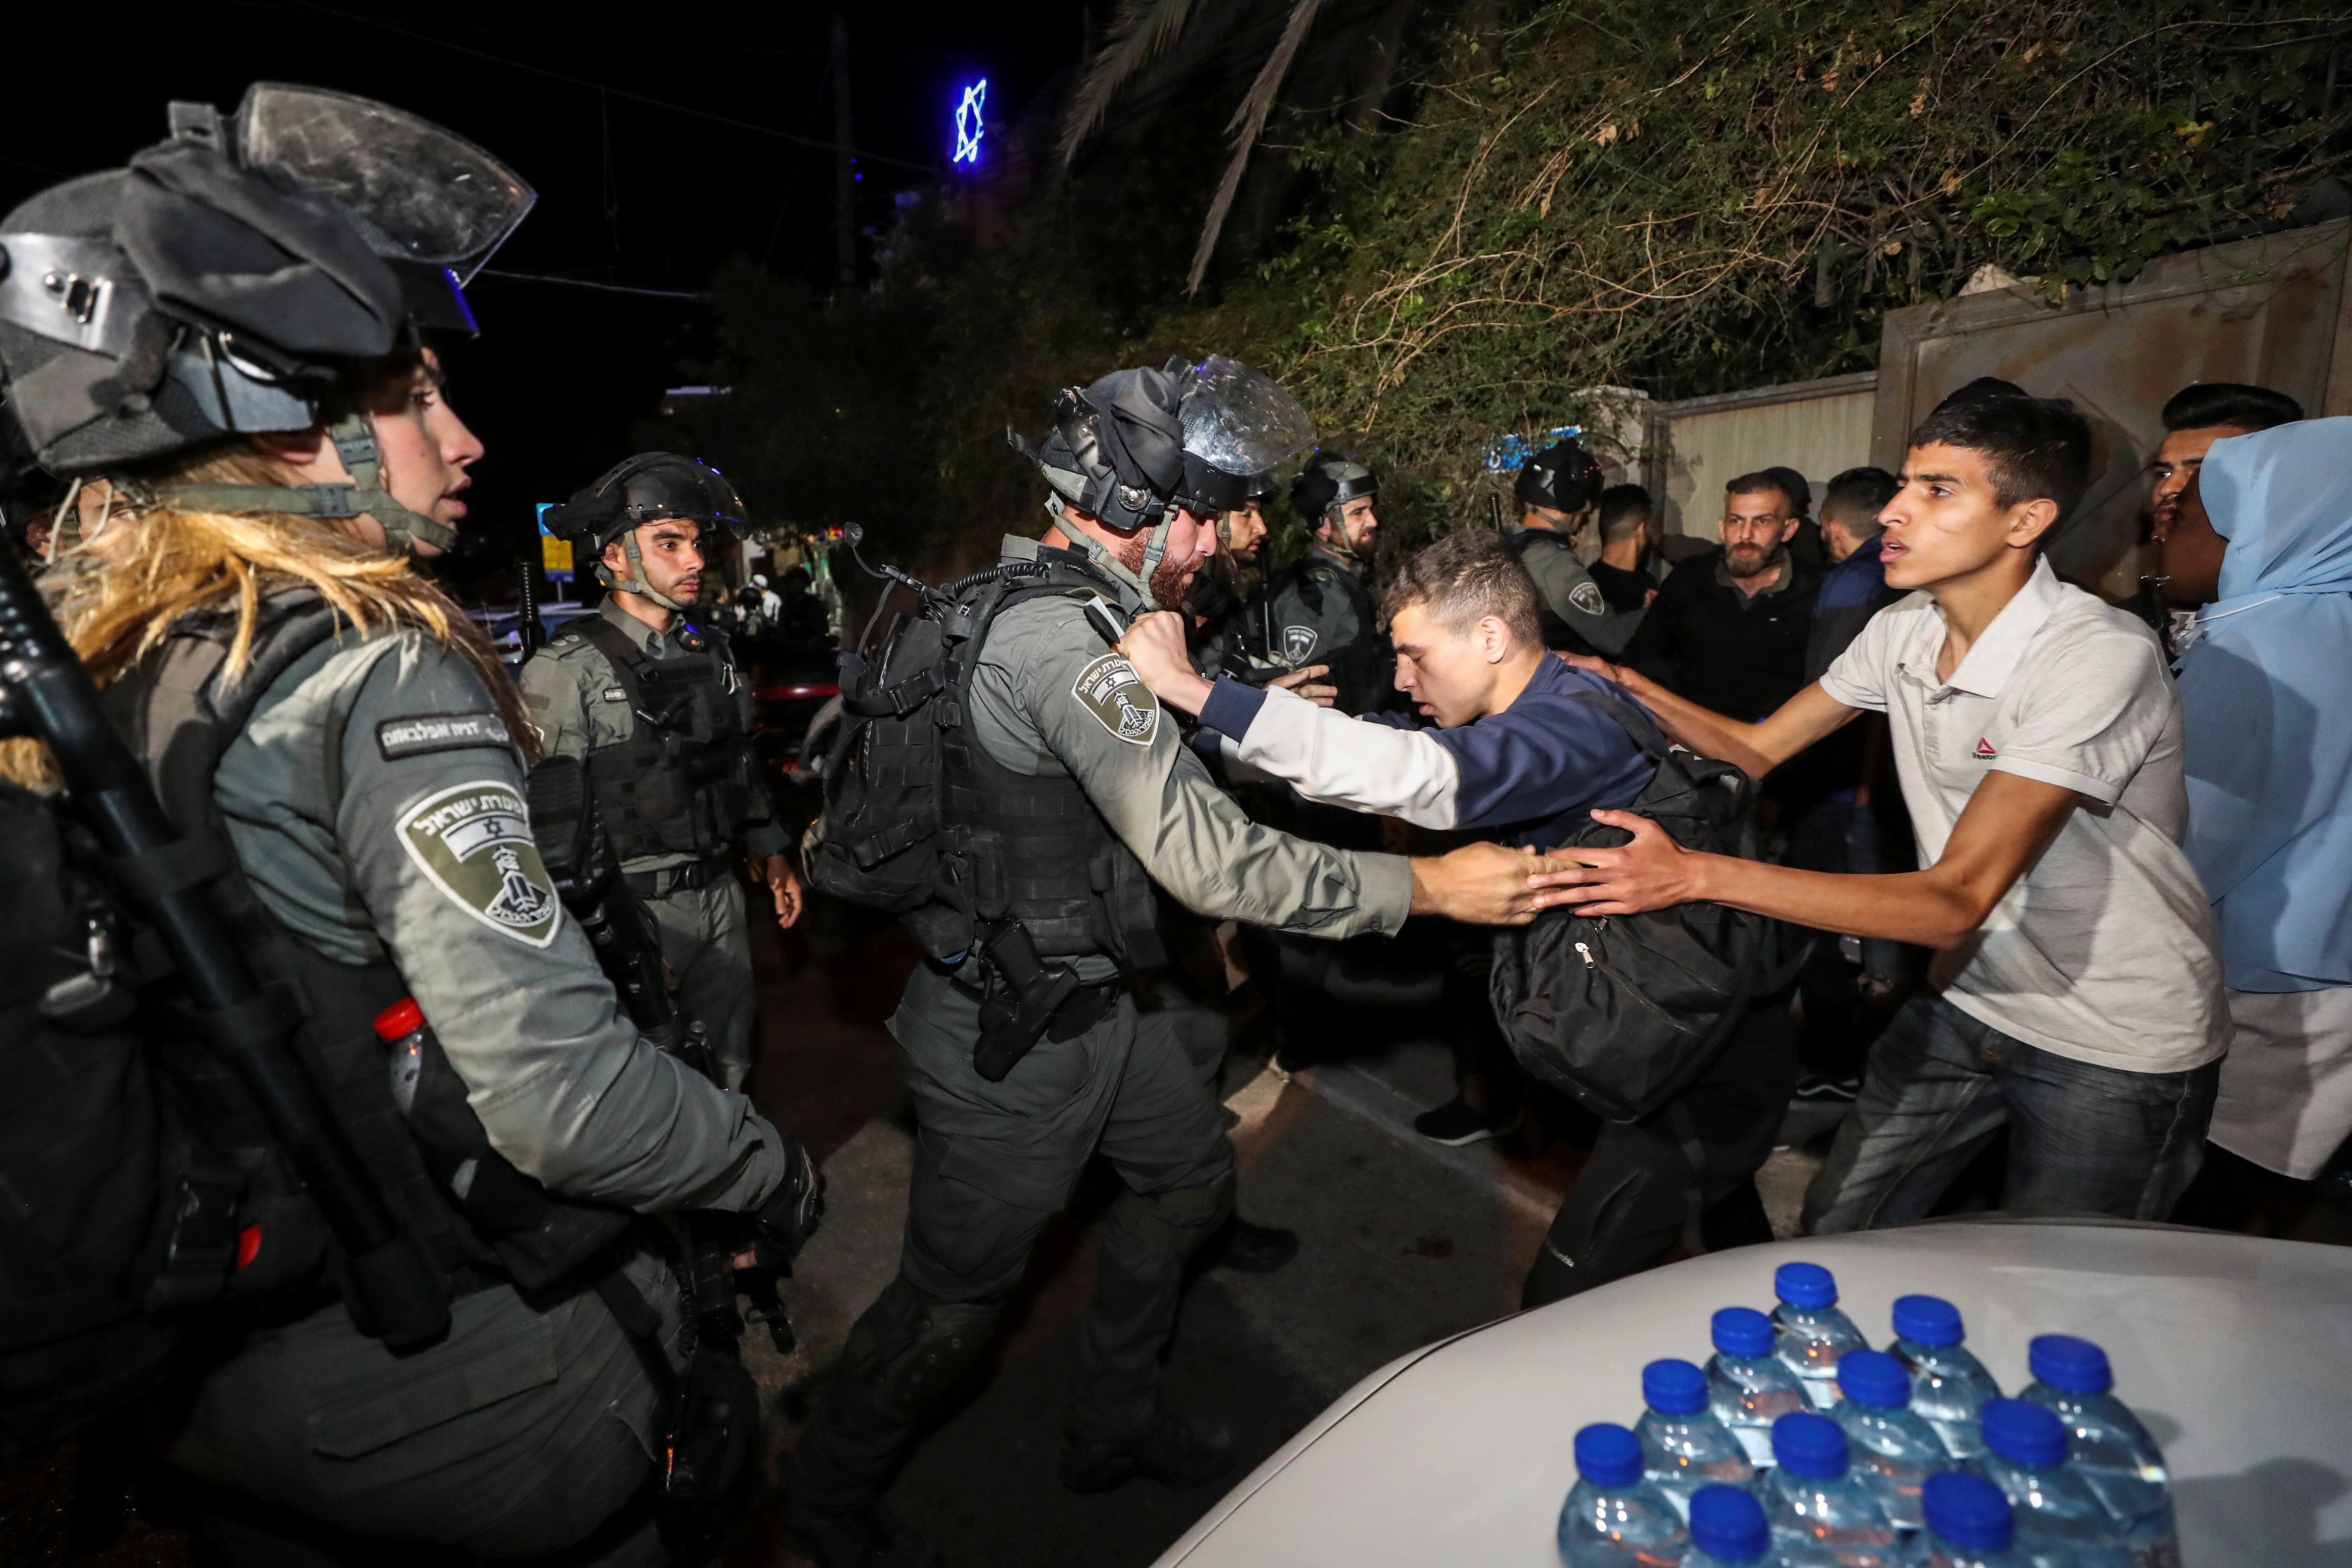 An Israeli border policeman scuffles with a Palestinian protester during clashes amid ongoing tension ahead of an upcoming court hearing in an Israeli-Palestinian land-ownership dispute in the Sheikh Jarrah neighbourhood of East Jerusalem May 3, 2021.   REUTERS/Ammar Awad